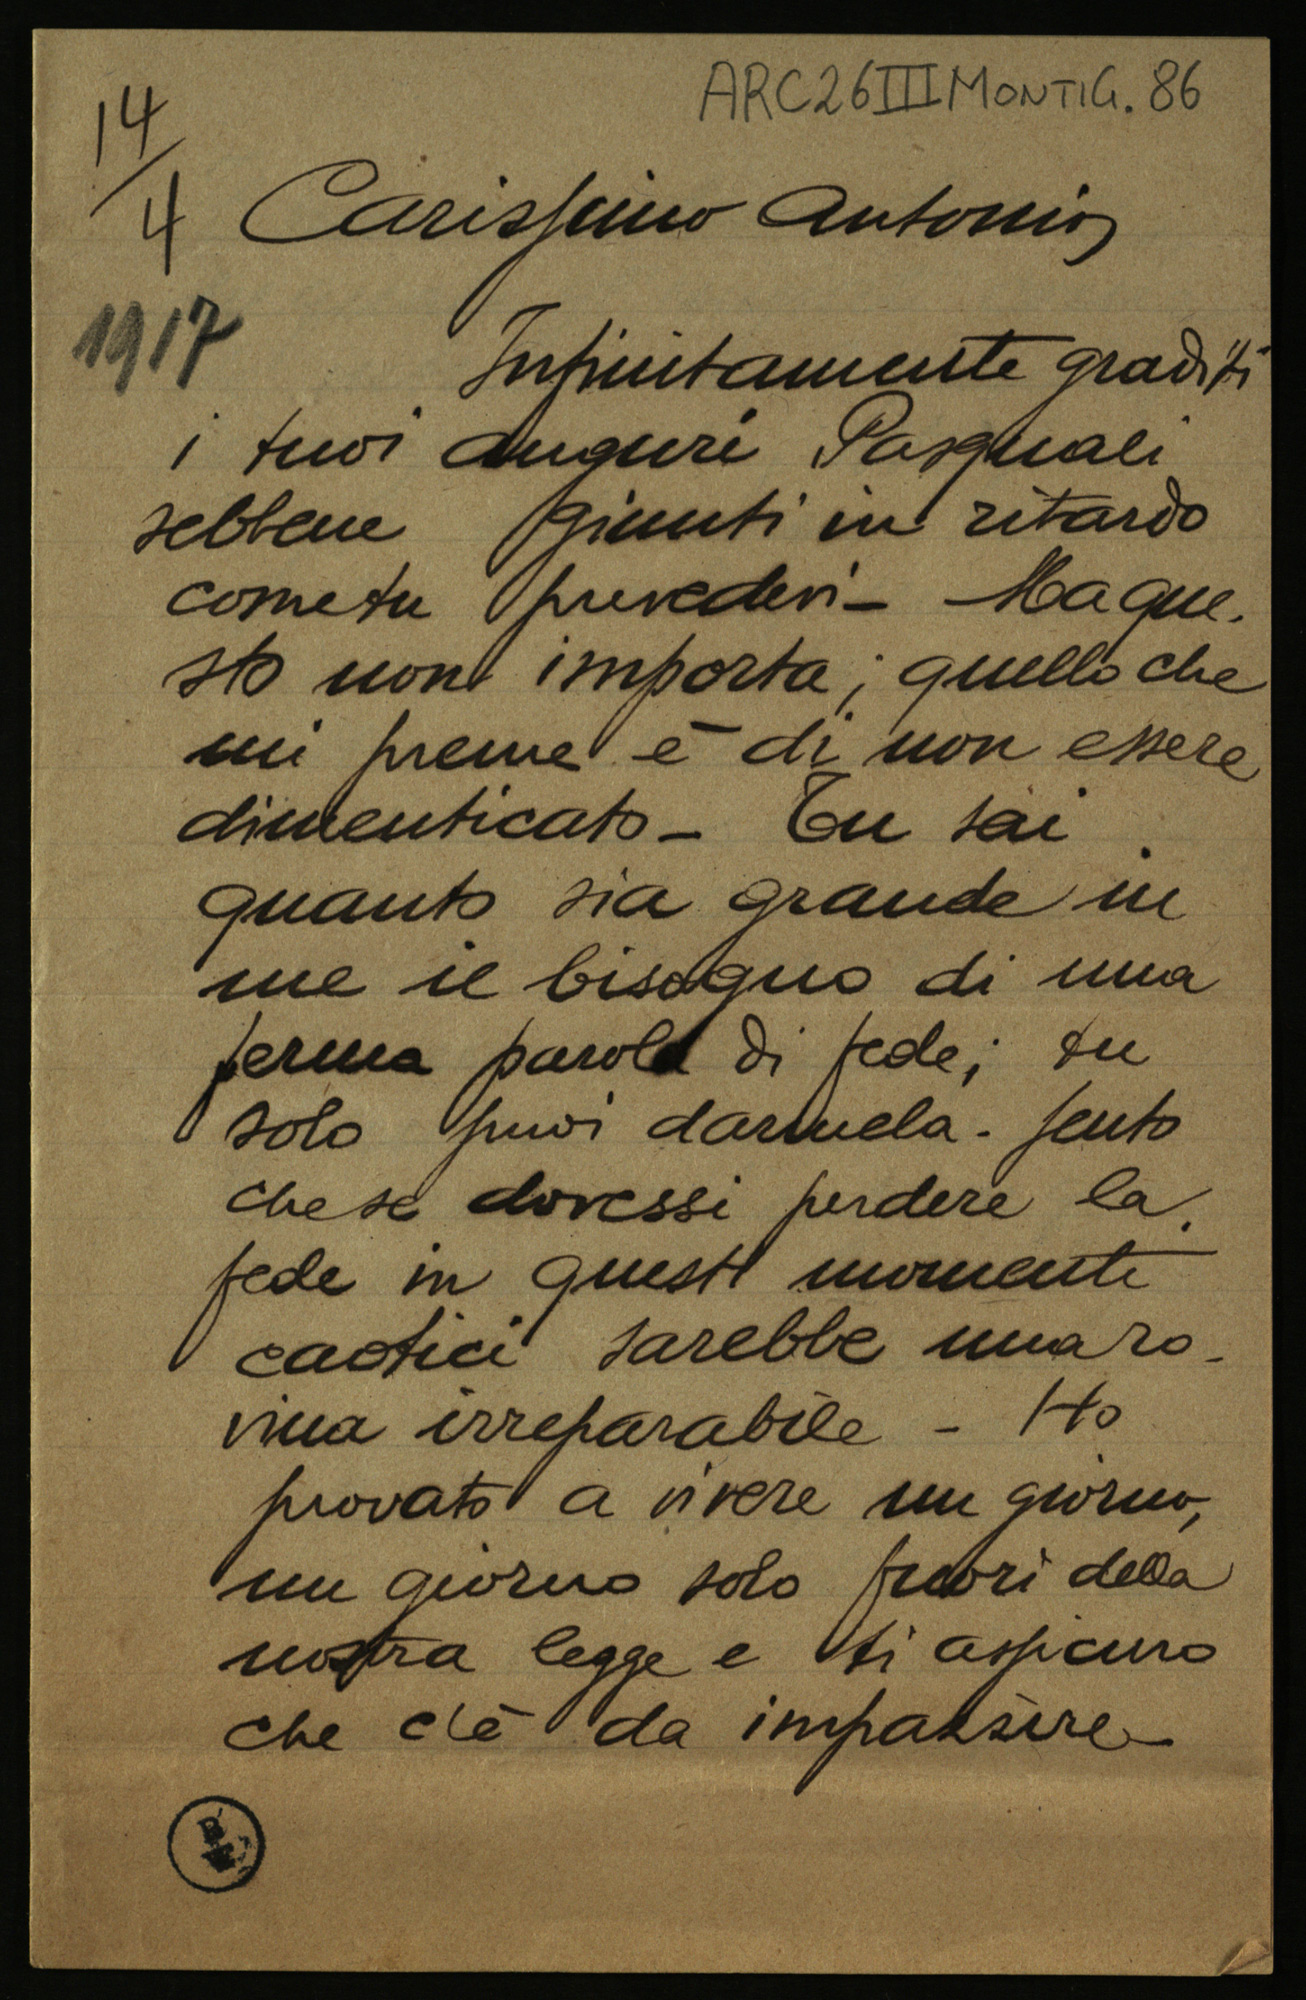 Letter from Goffredo Monti to Antonio Bruers